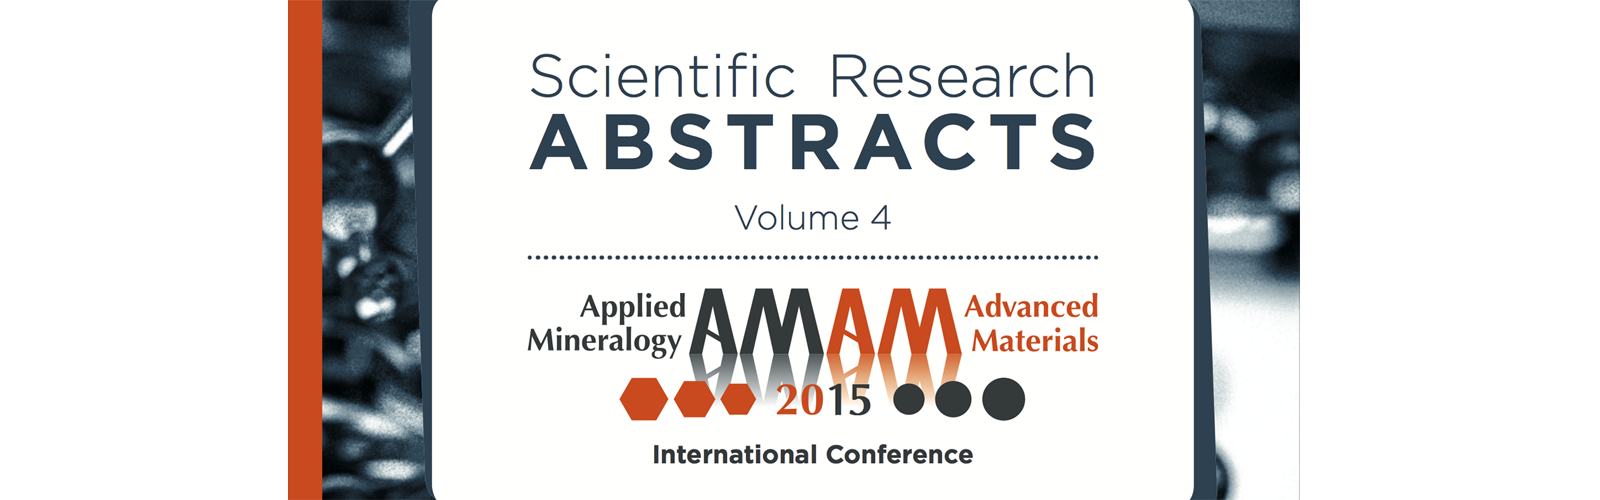 Scientific Research Abstracts